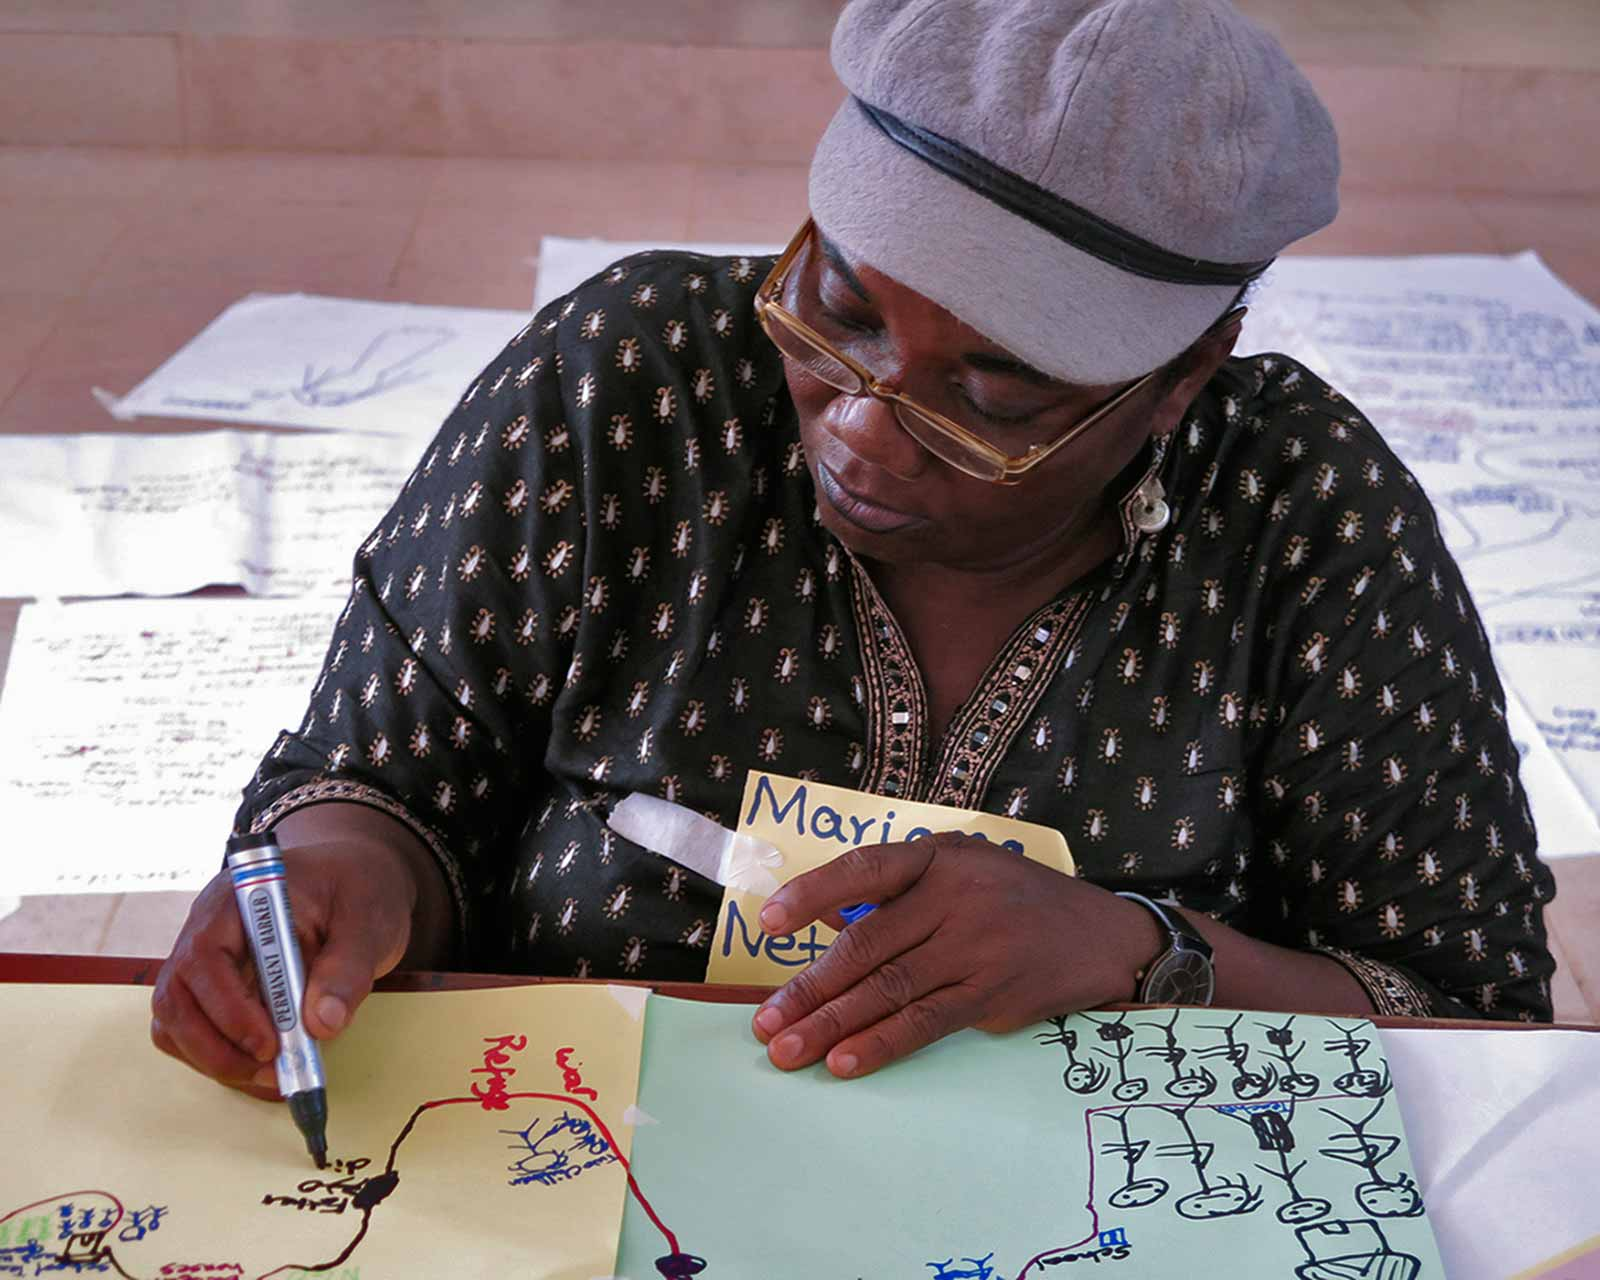 Mariama, part of the Kailahun Women in Governance Network, draws her life map